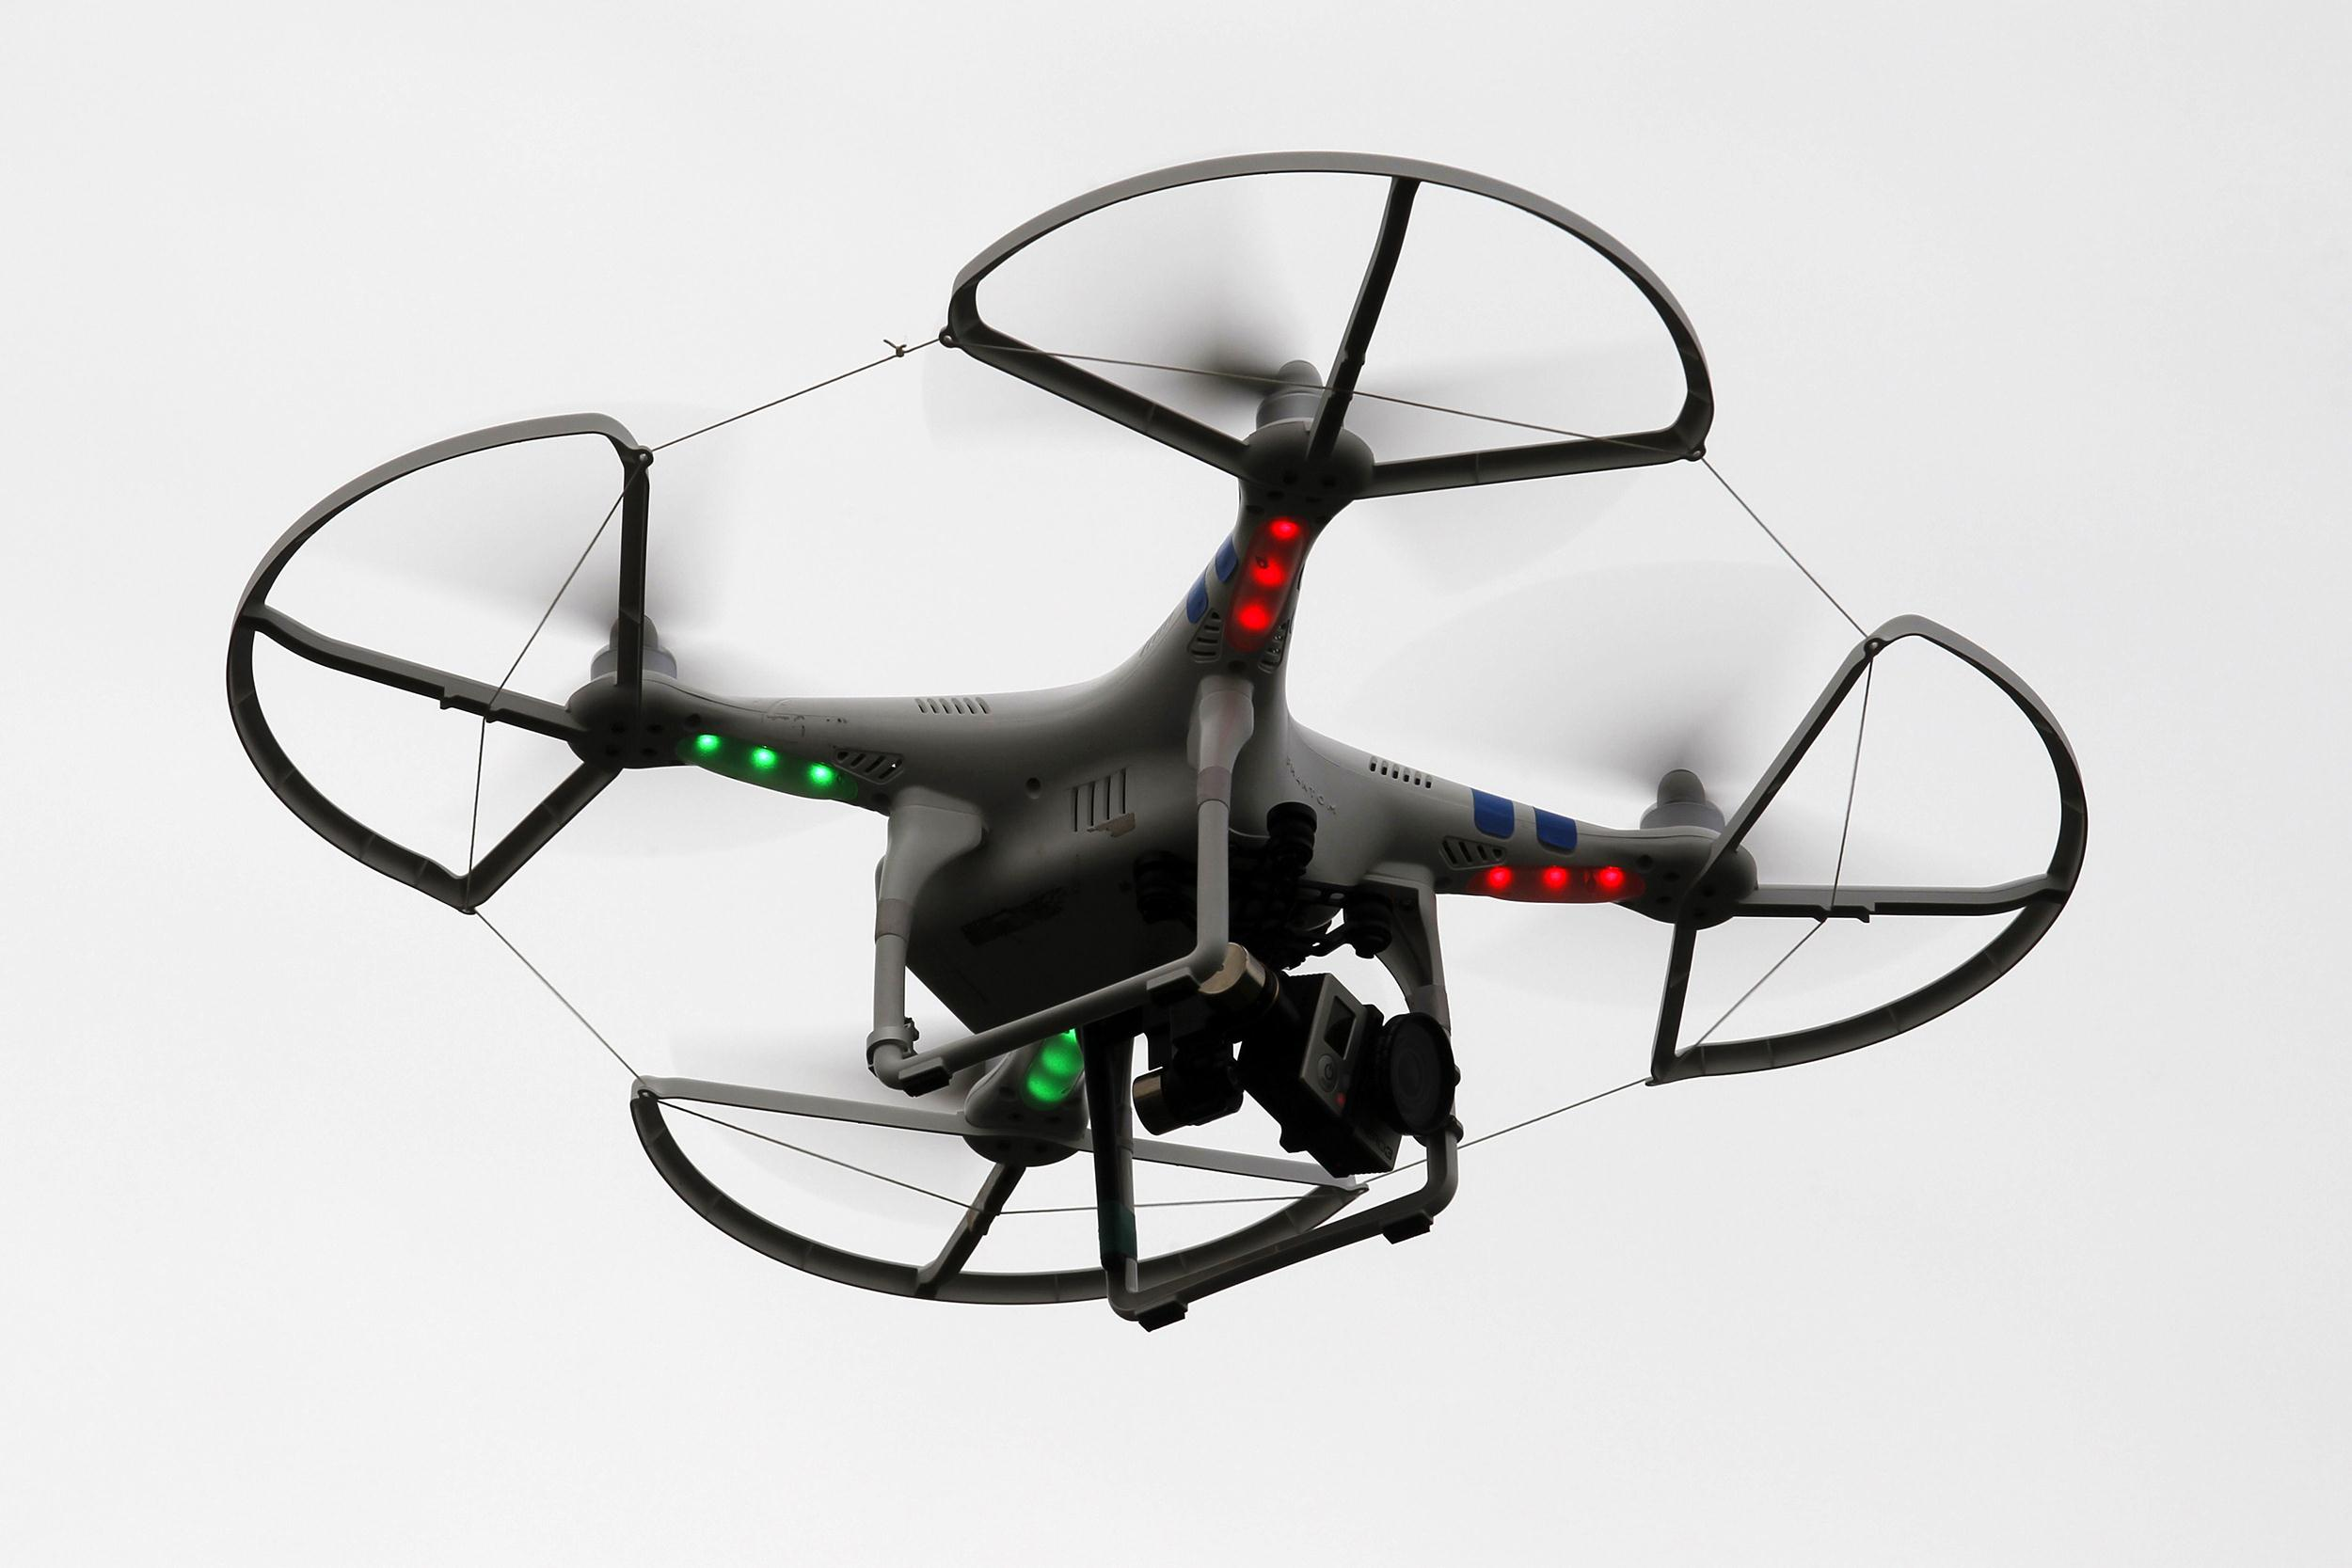 Image: A flying drone camera used by Hamas